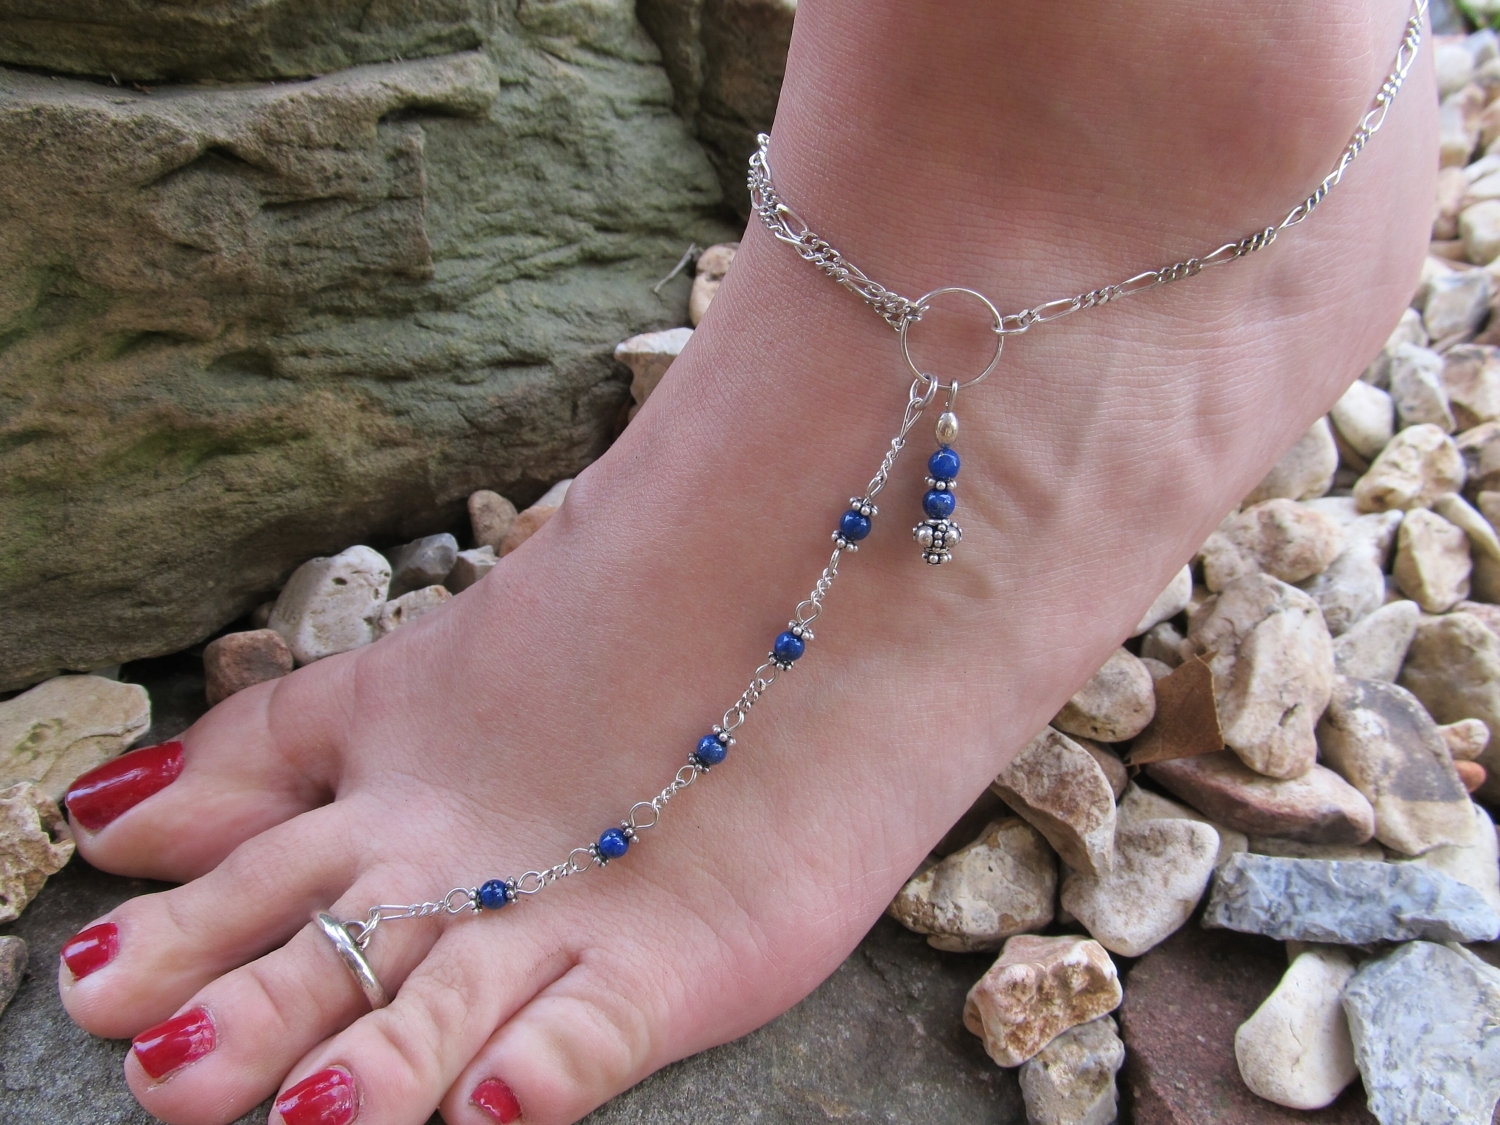 Anklet Deep Blue Lapis Sterling Silver Ankle Bracelet Toe Ring For Most Popular Toe Rings With Elastic Band (View 3 of 15)